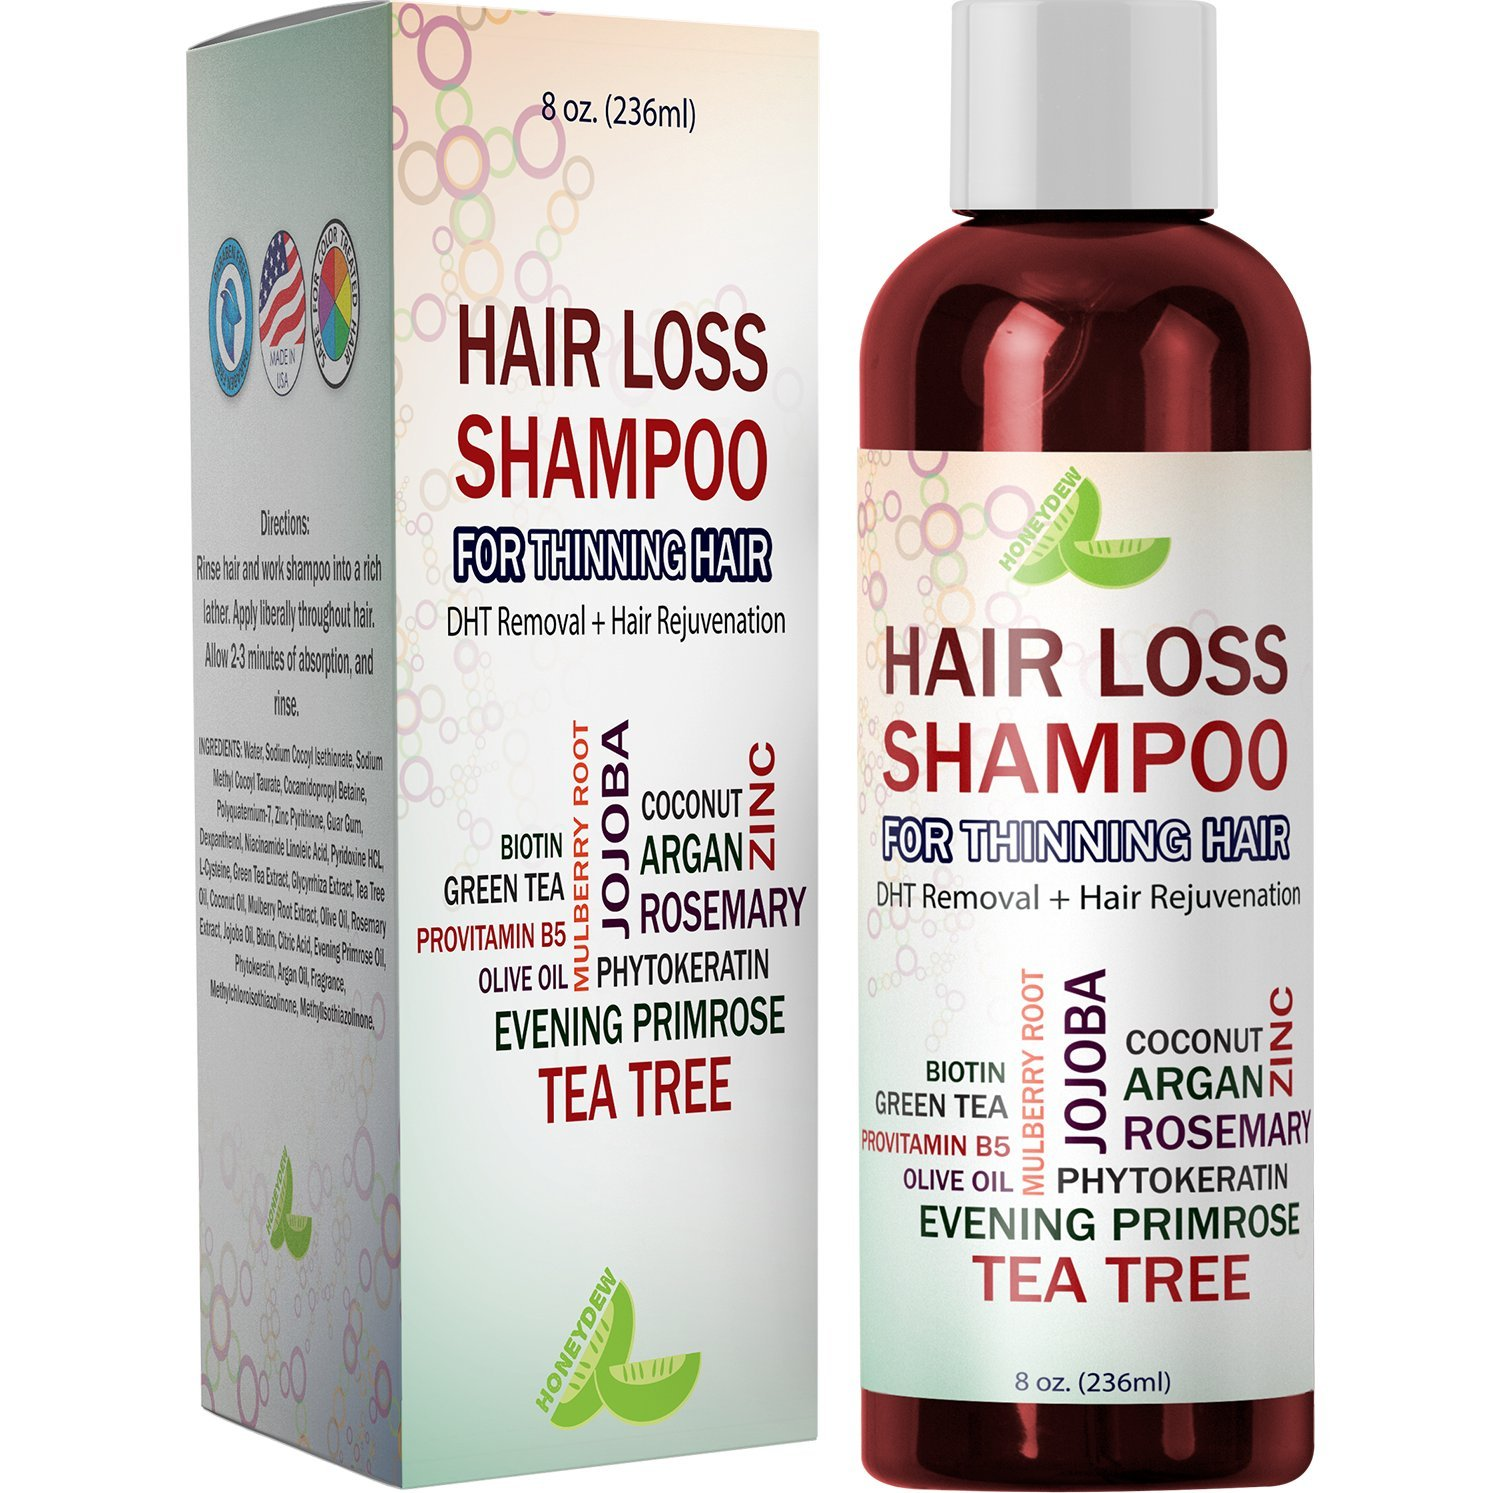 Best Hair Loss Shampoo Potent Hair Loss Fighting Formula Topical Regrowth Treatment Restores Hair Stops Hair Shedding Contains Biotin Rosemary Coconut Oil For Women and Men: Beauty